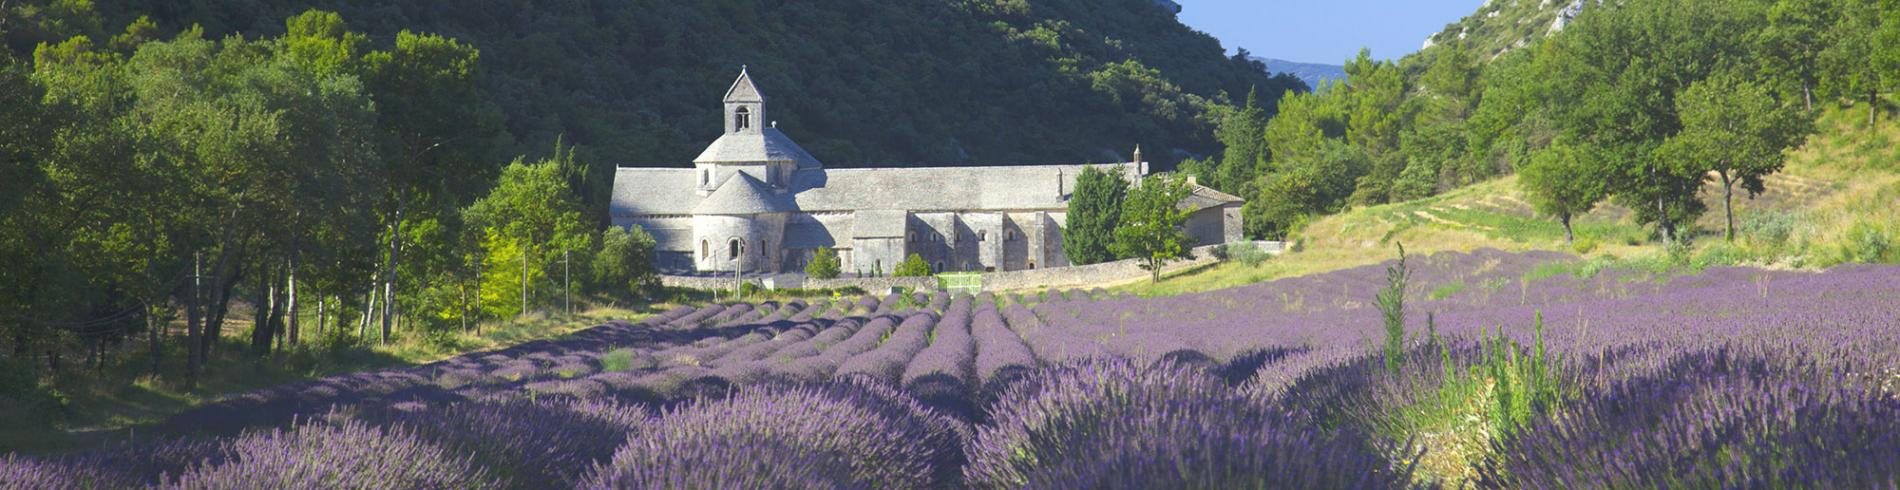 Abbey surrounded by fields of lavender